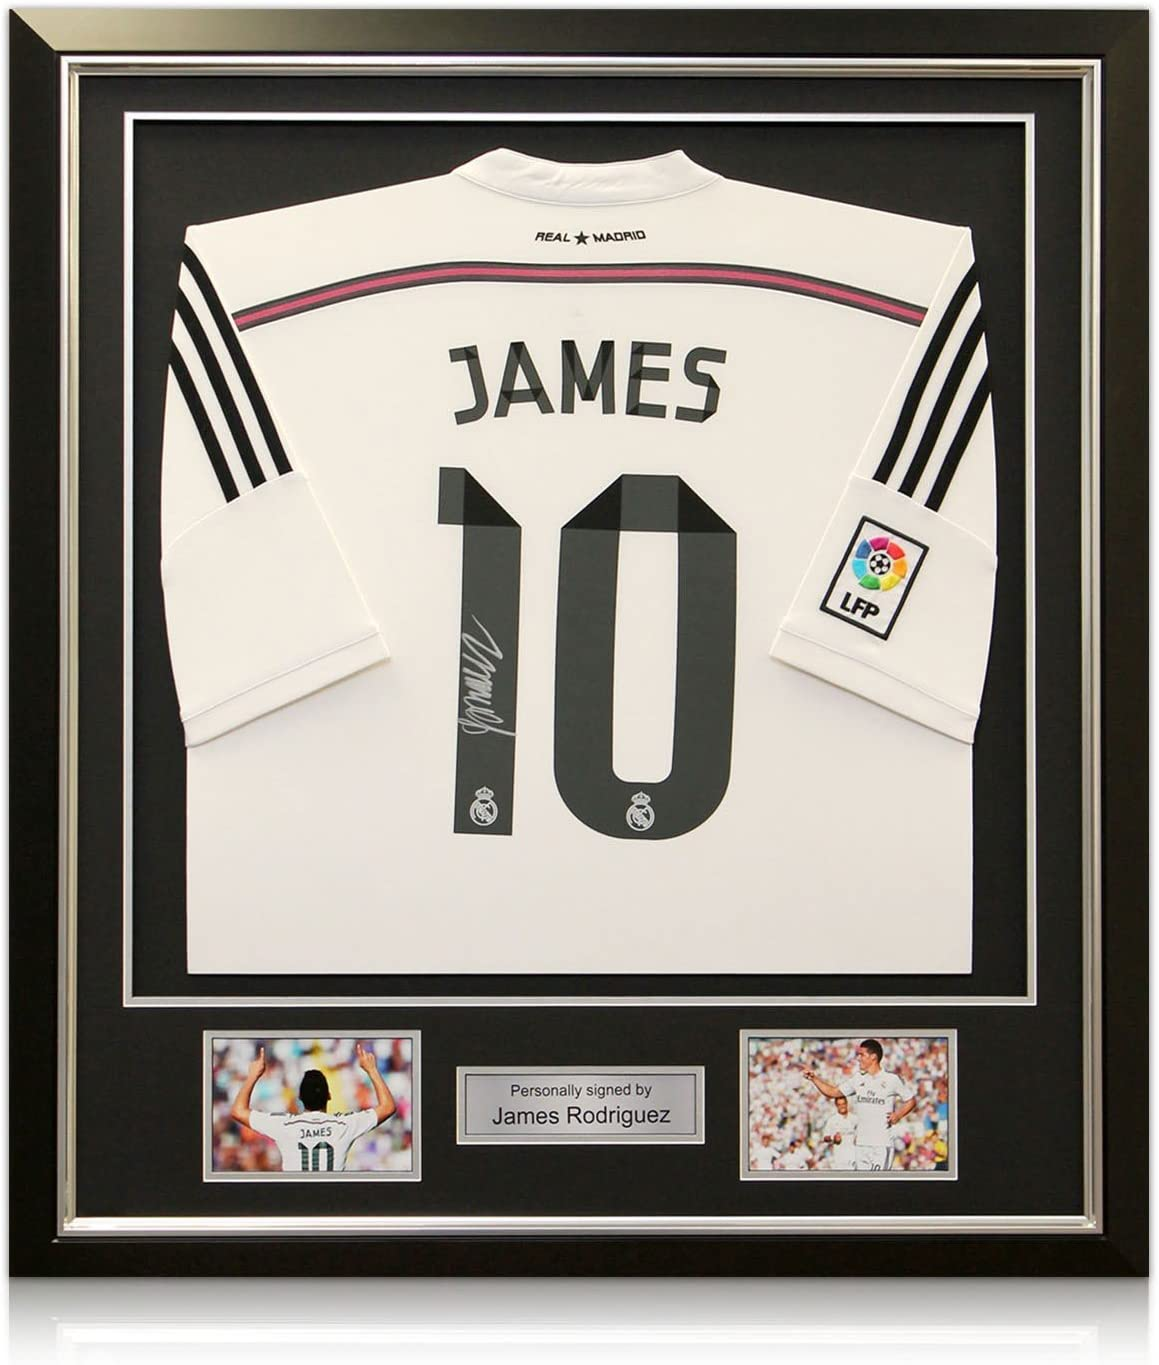 James Rodríguez Real Madrid firmada Football Shirt (Frame Deluxe con plata embutido): Amazon.es: Deportes y aire libre